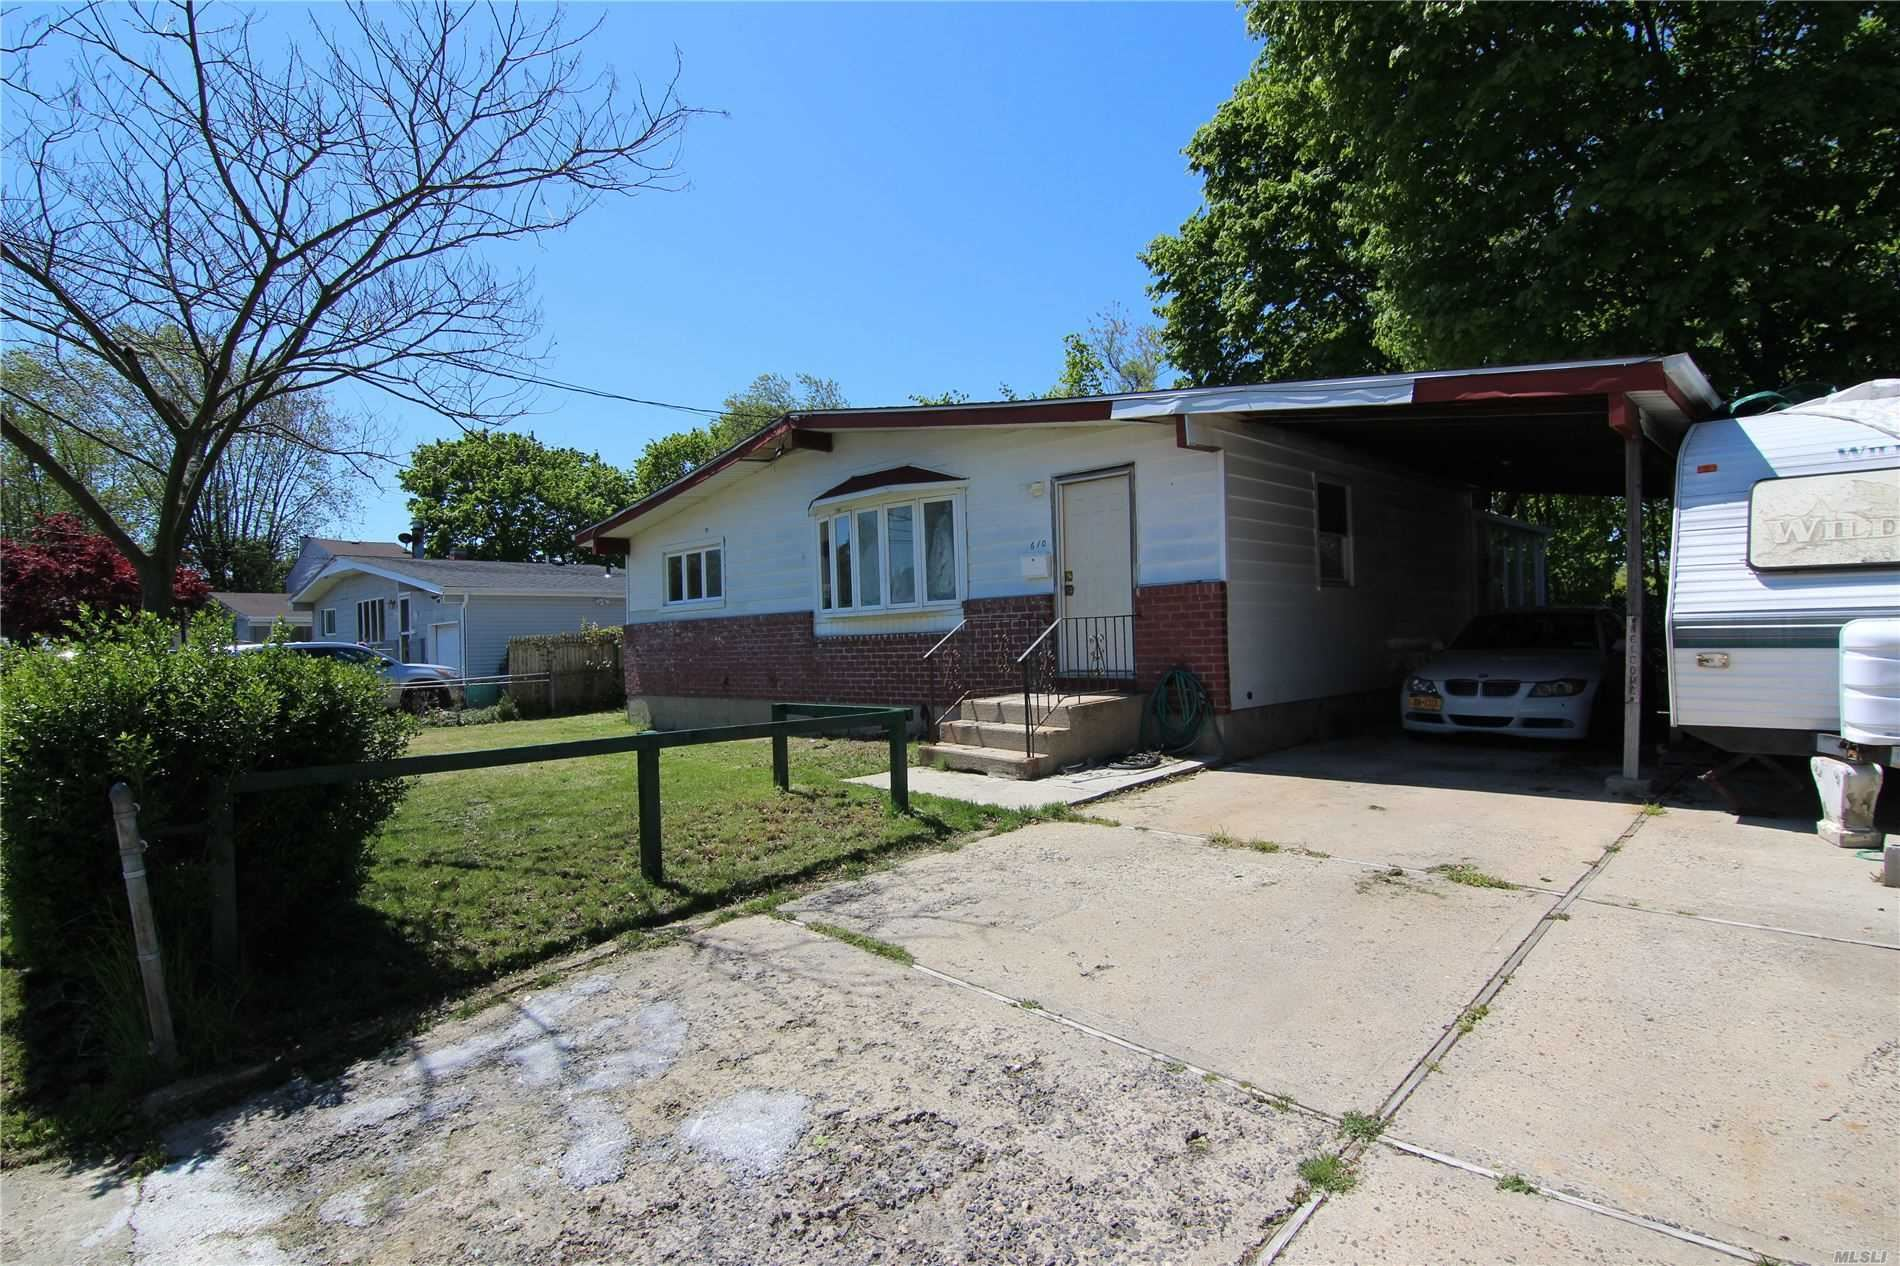 610 Lowell Ave, Central Islip, NY 11722 - MLS#: 3214892